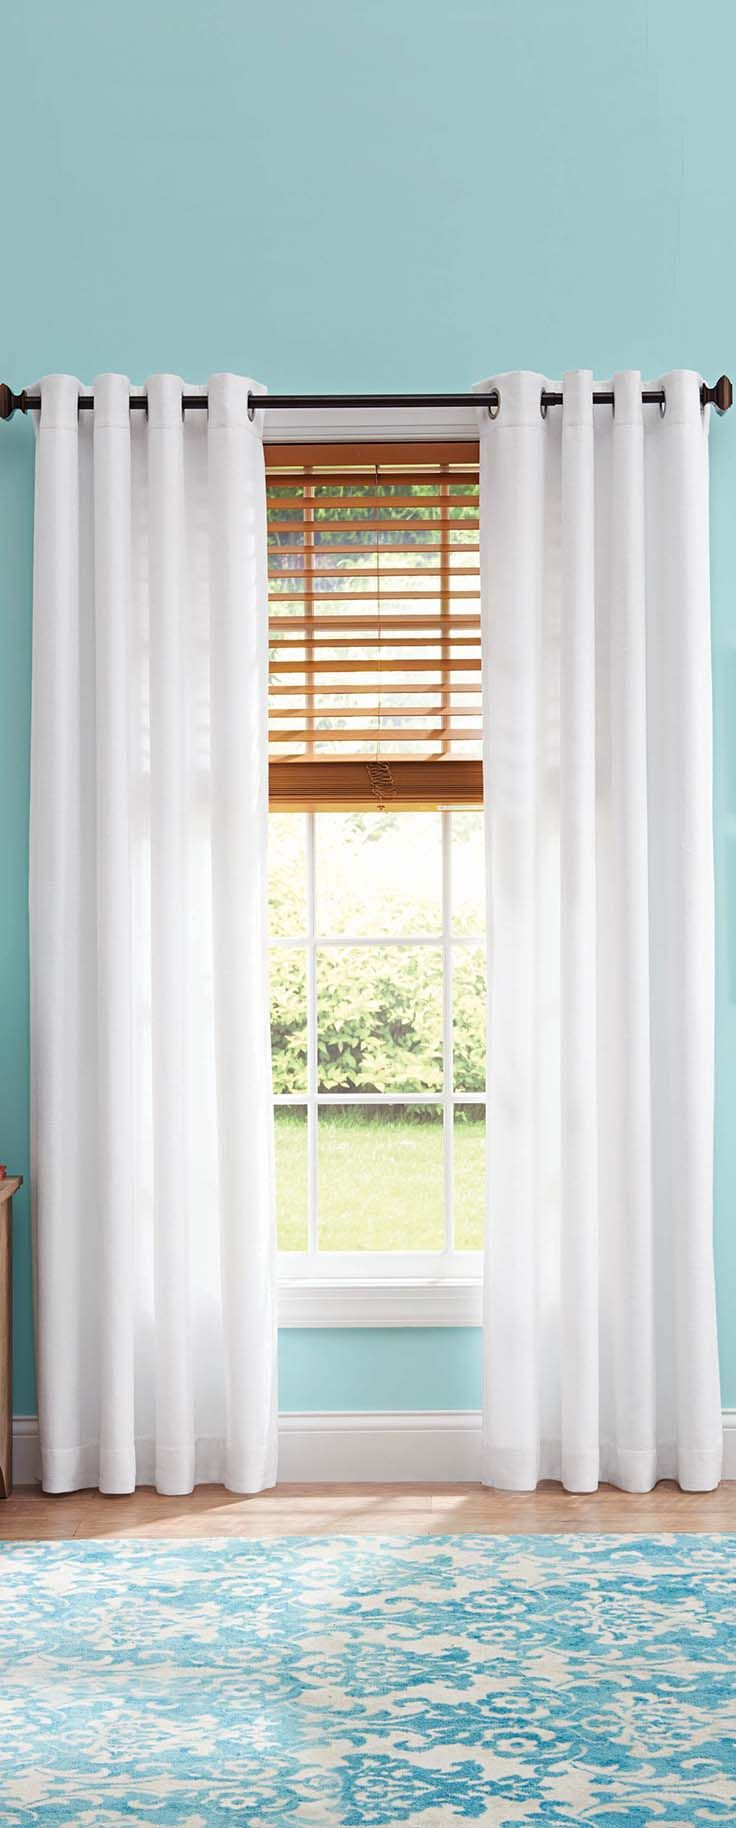 New Window Treatments From Better Homes And Gardens